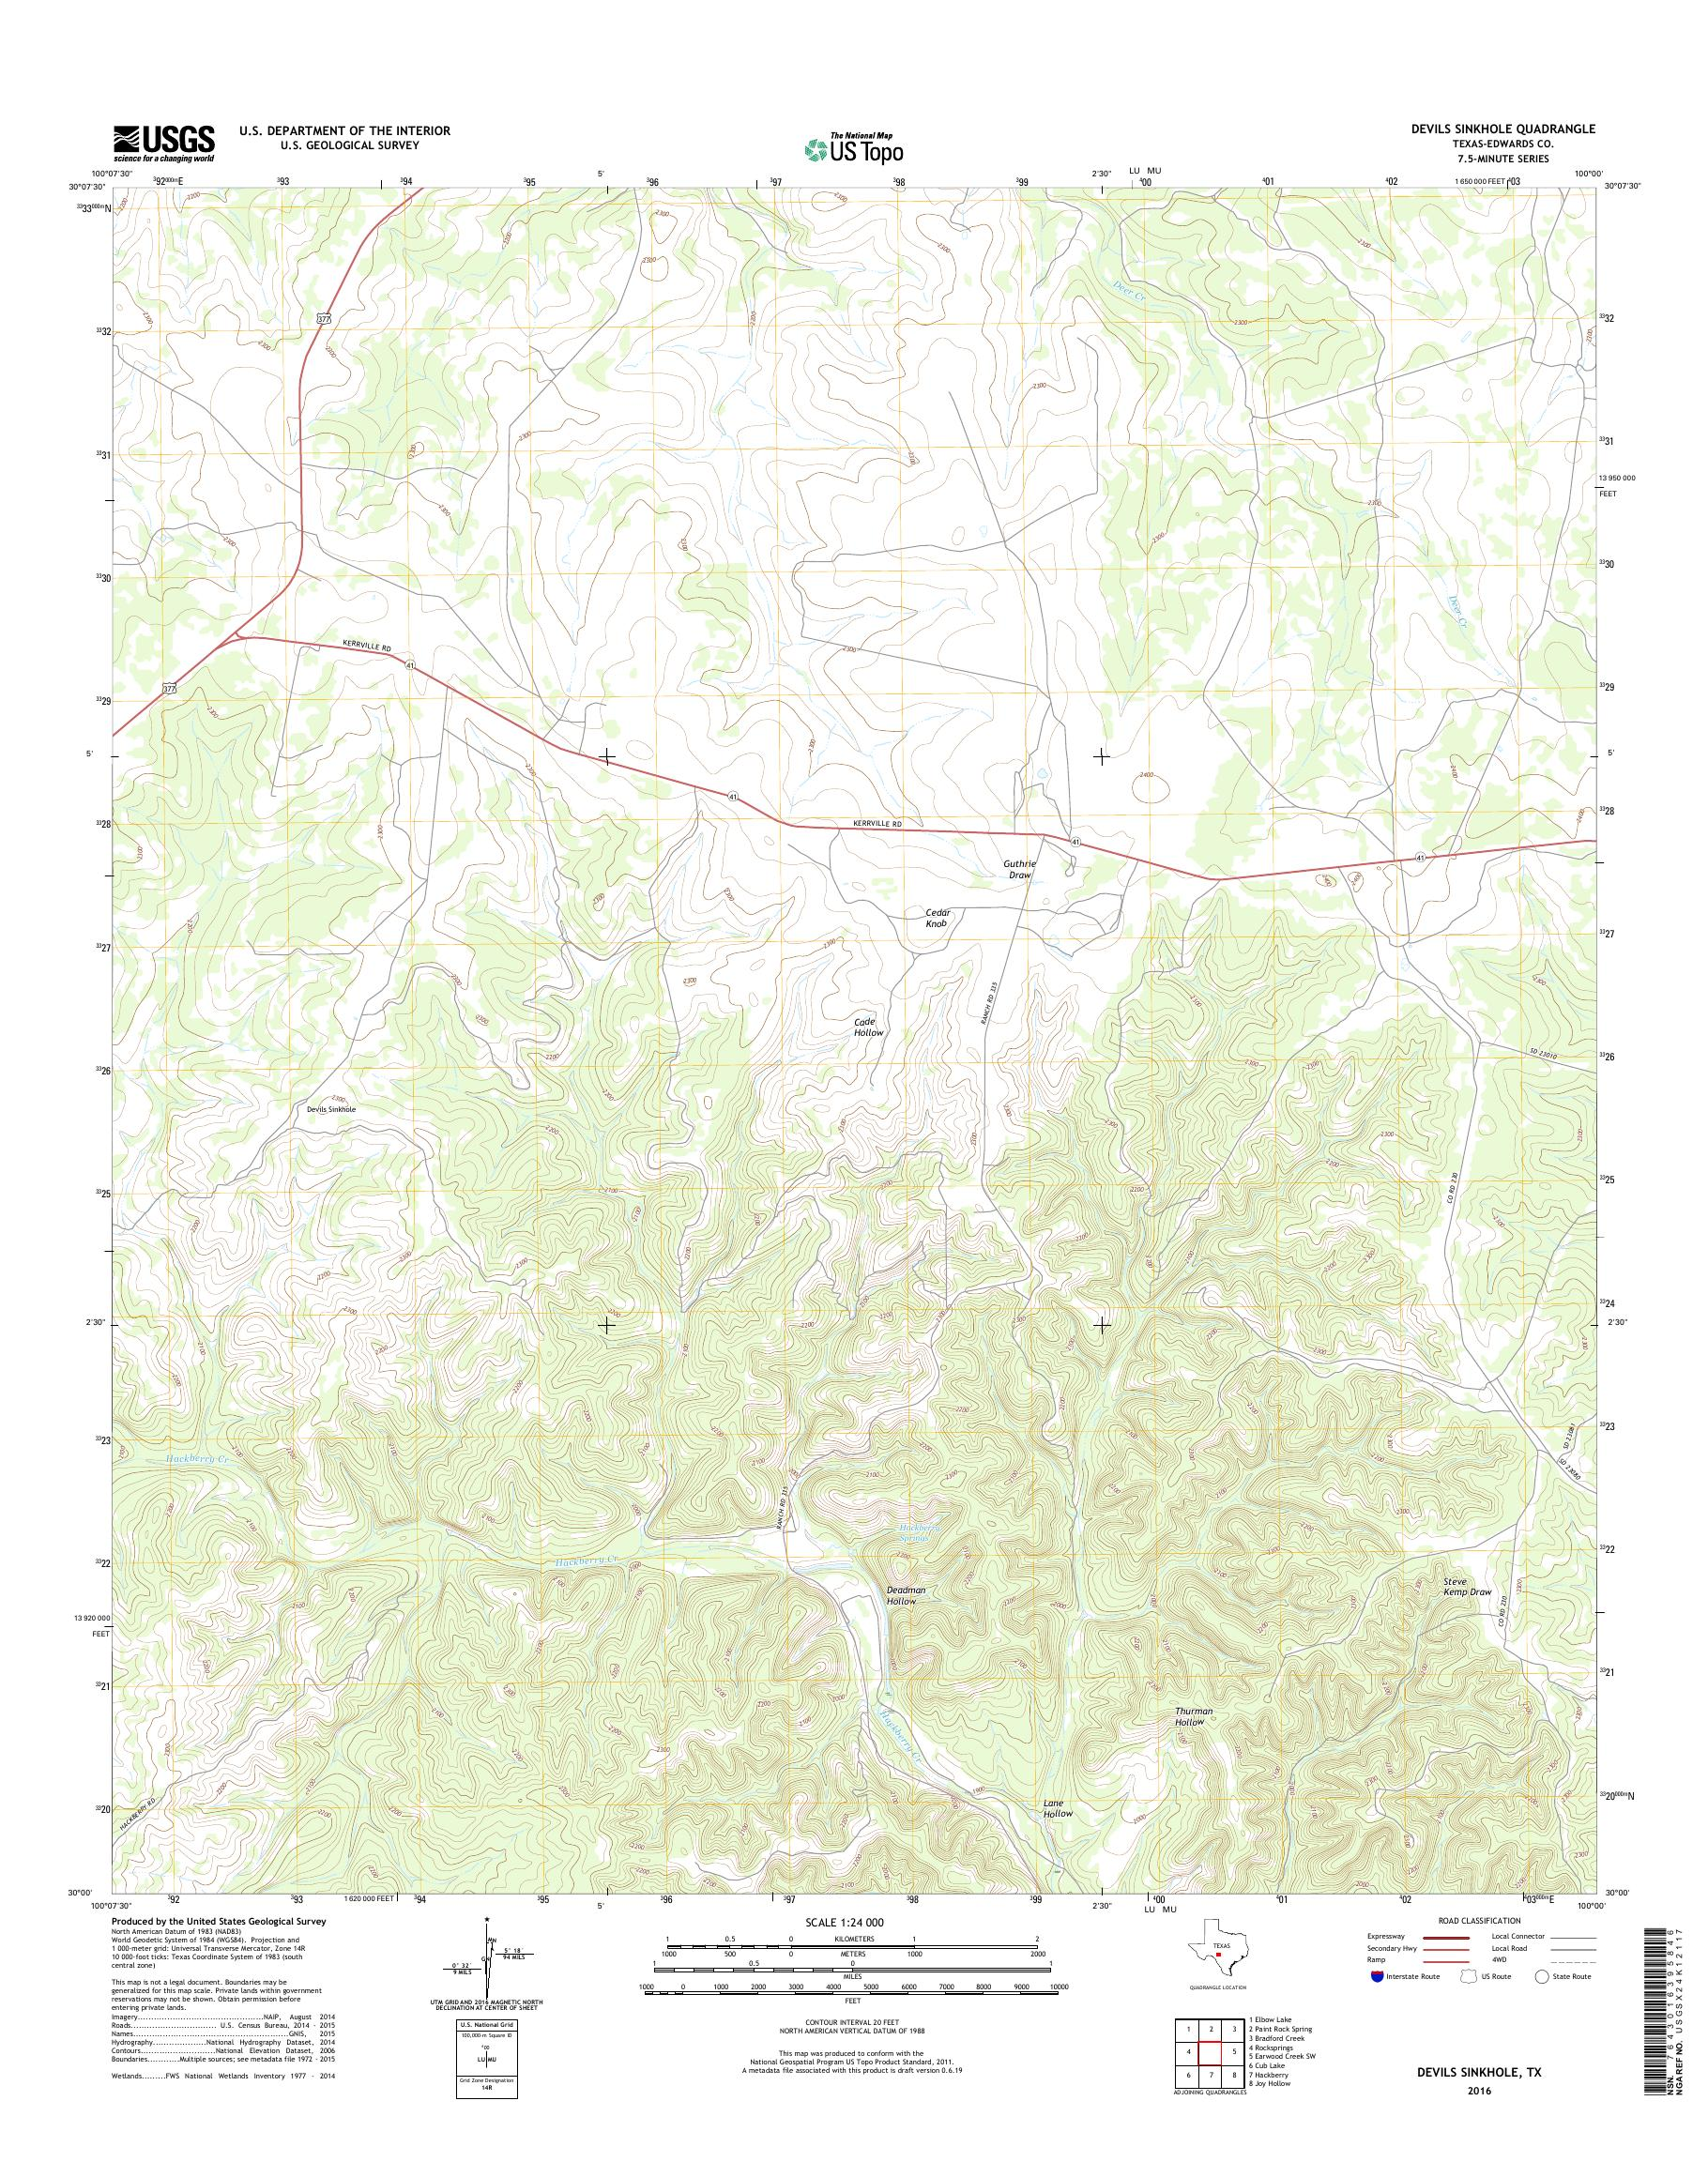 Mytopo Devils Sinkhole Texas Usgs Quad Topo Map - Us-sinkhole-map